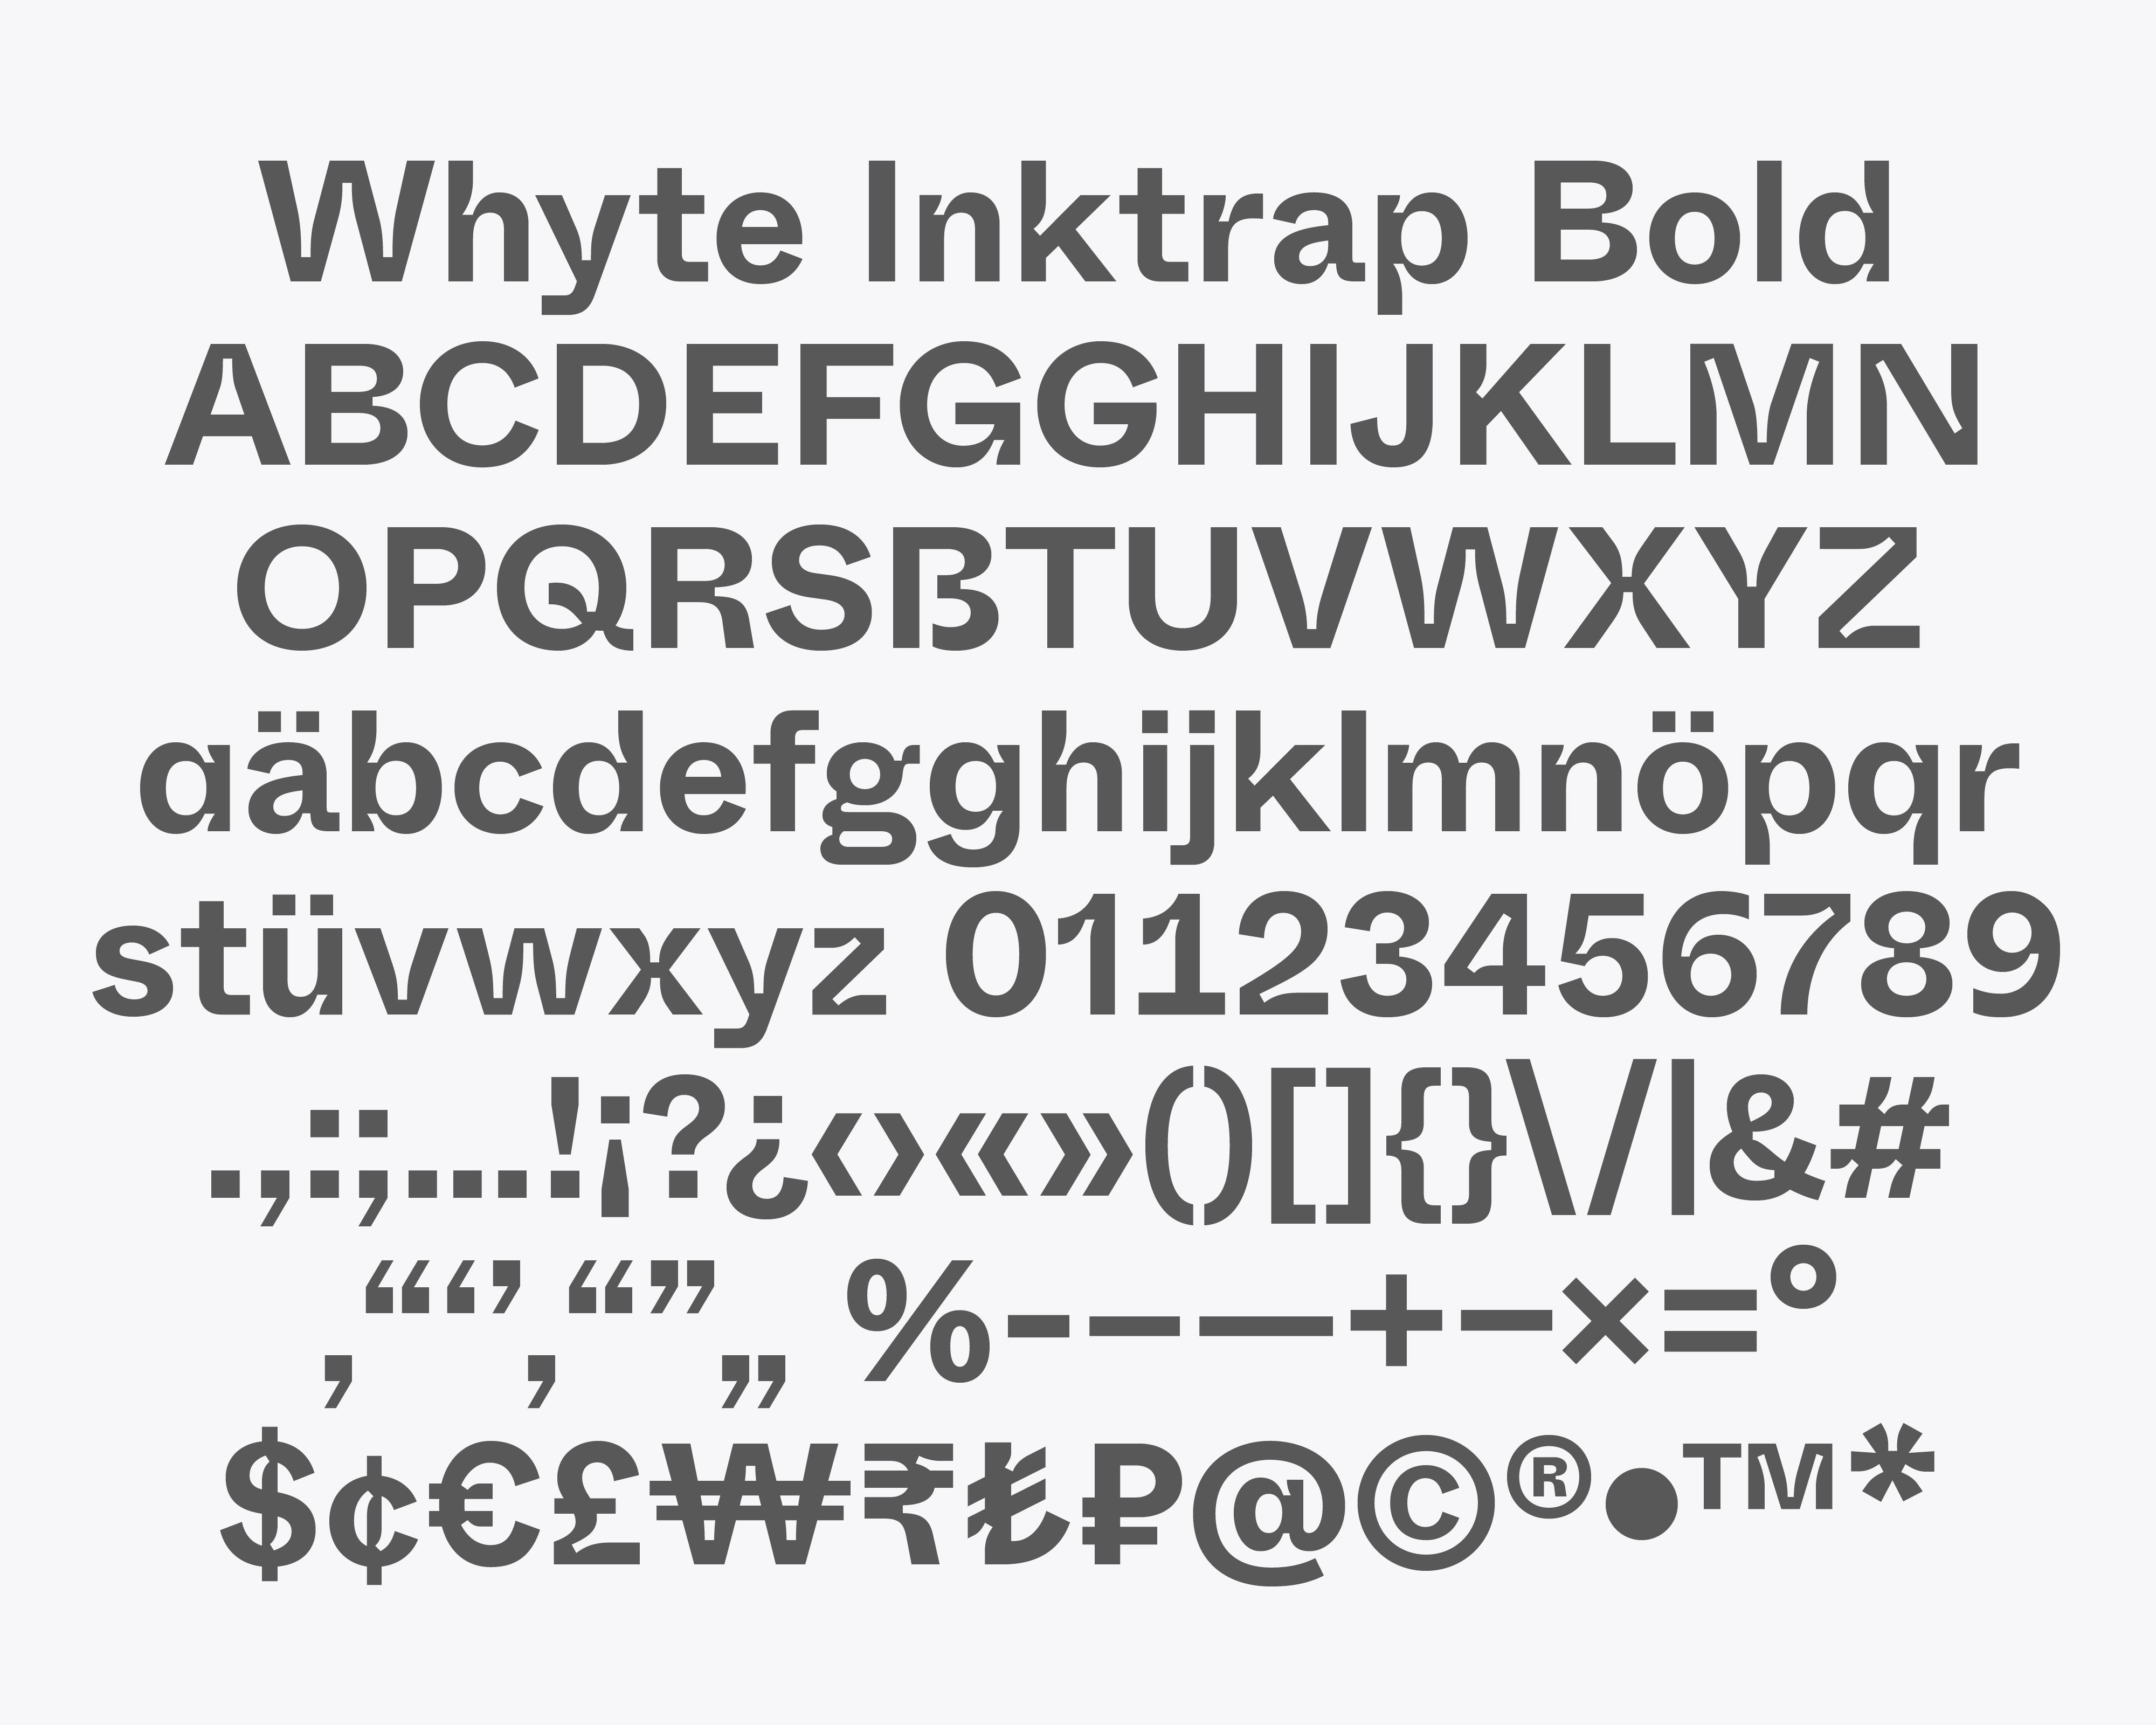 Font Whyte Inktrap